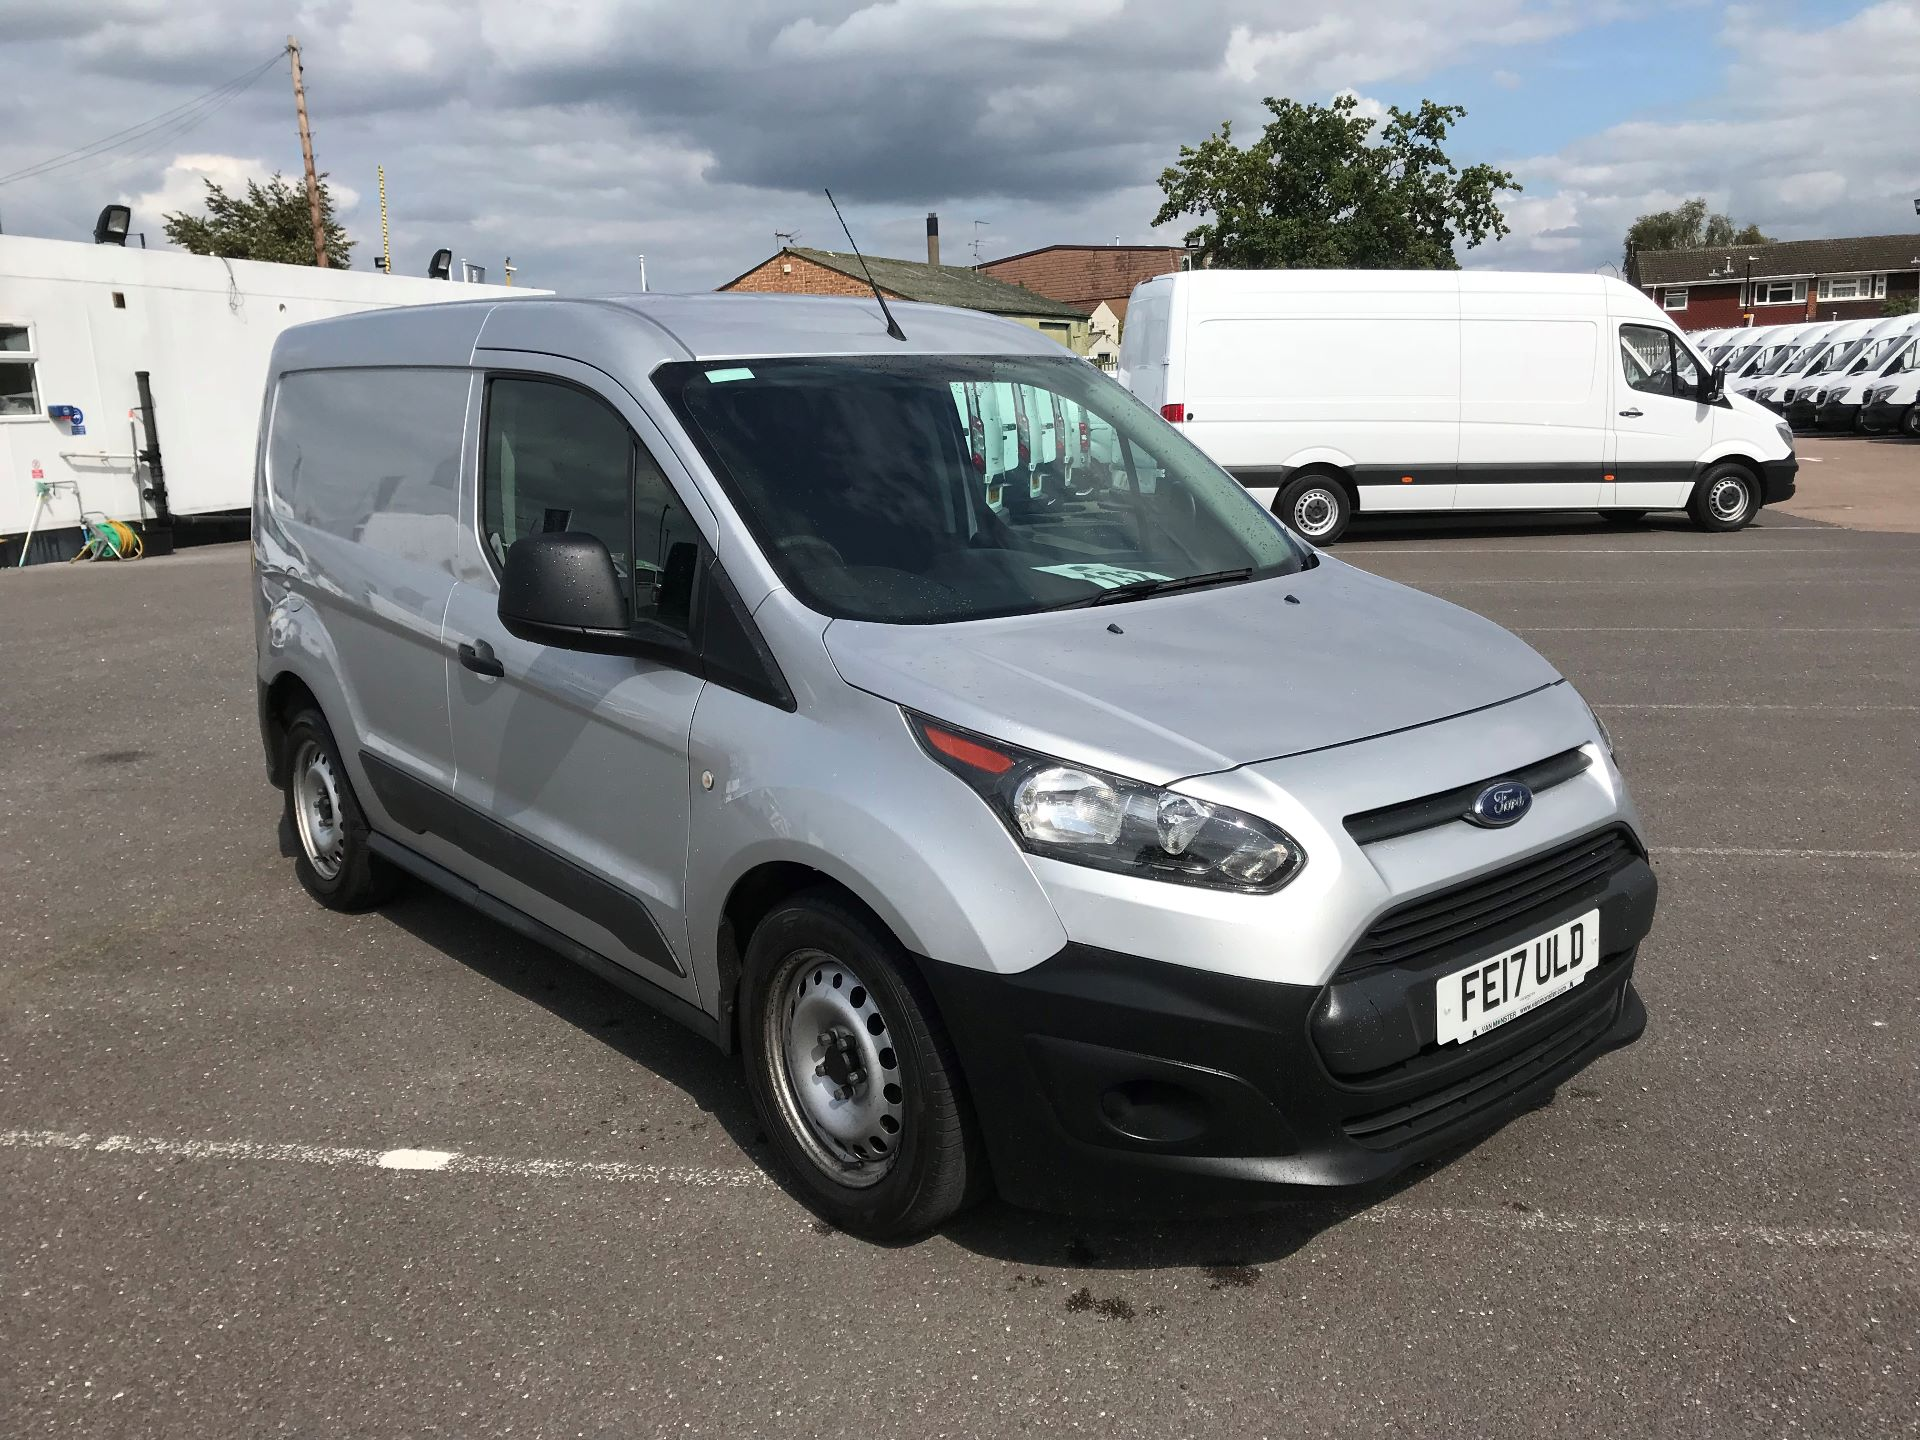 2017 Ford Transit Connect   220 L1 1.5 TDCI 75PS EURO 6 (FE17ULD)